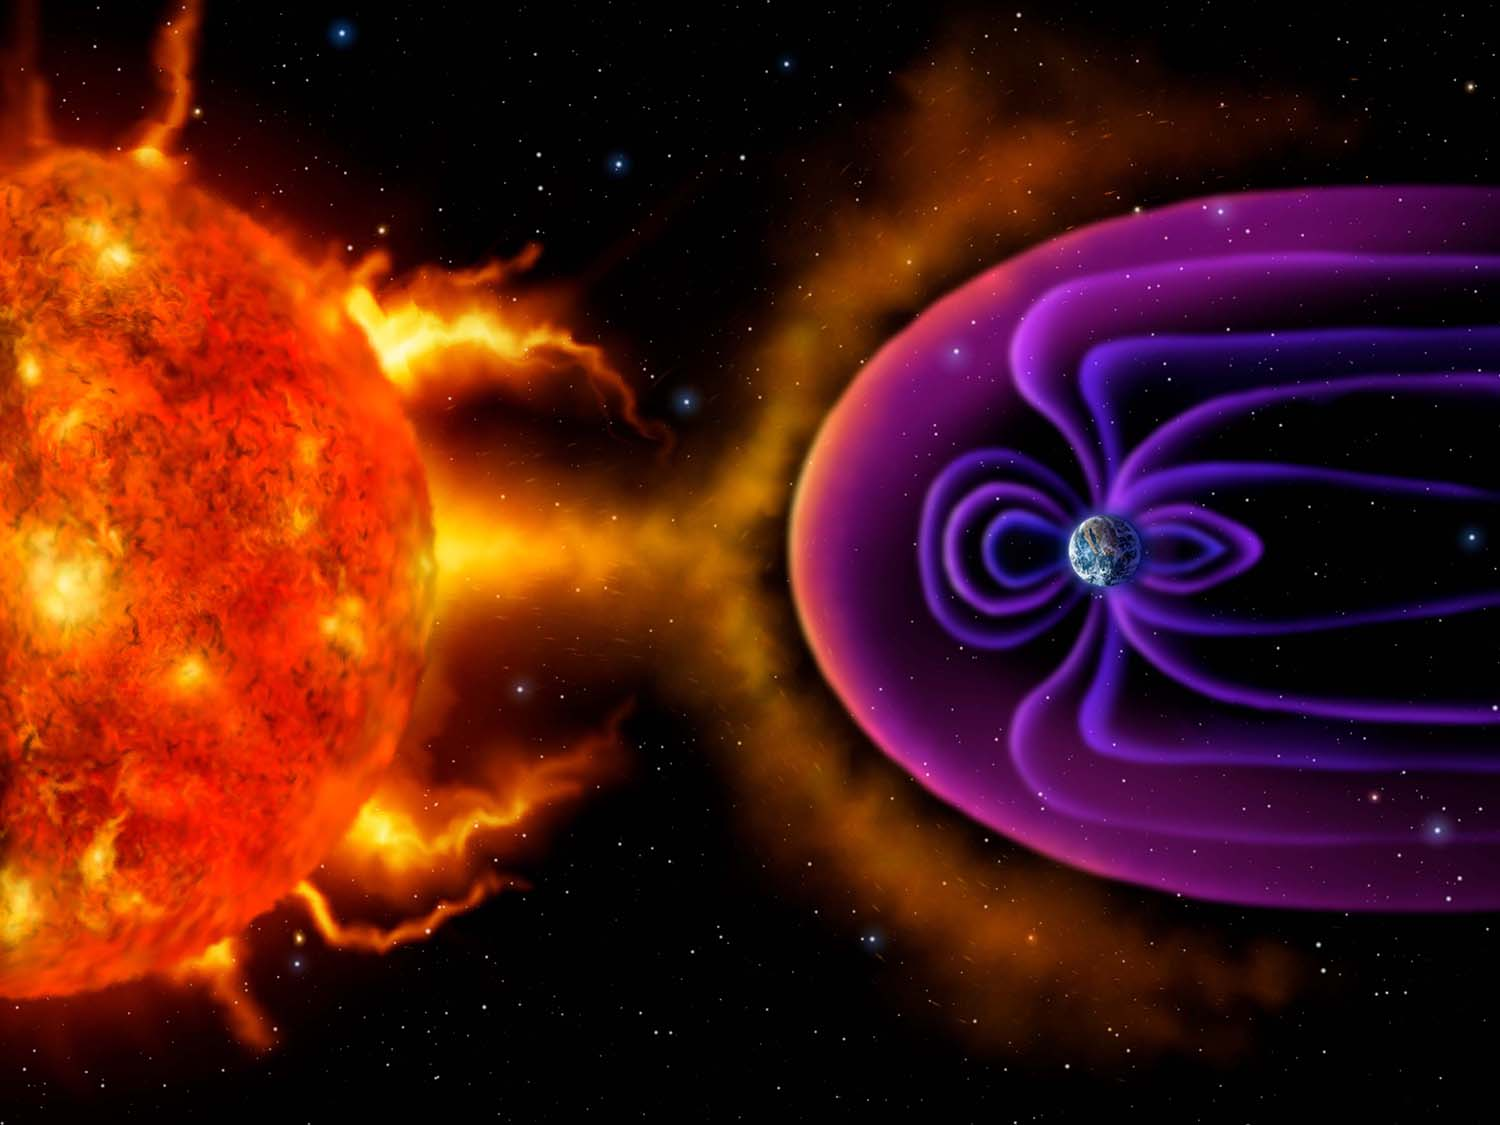 Digital illusustration of the Earth's Magnetosphere deflecting solar wind and radiation from the Sun